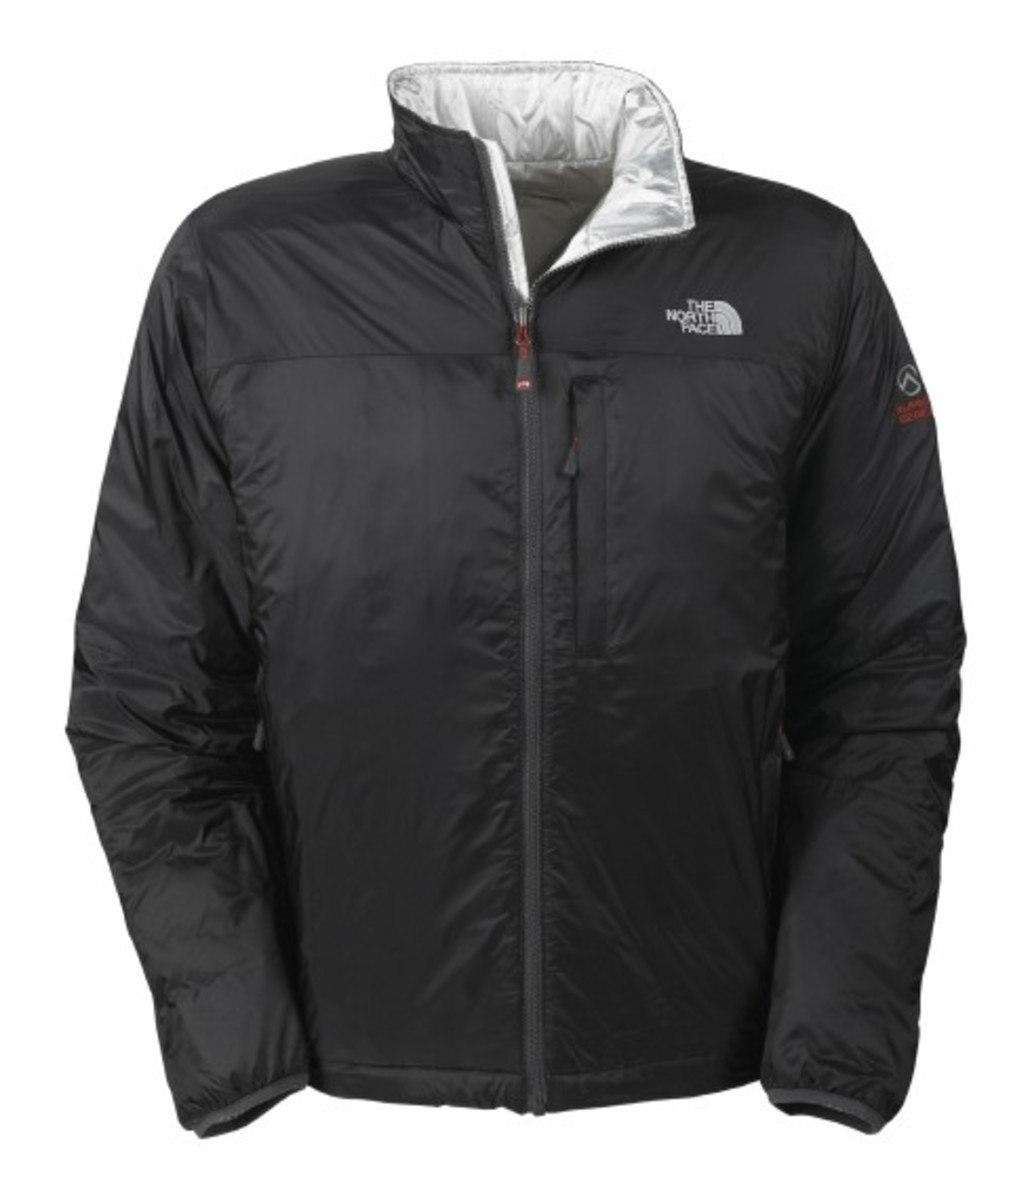 The North Face - Mercurial Jacket - 1